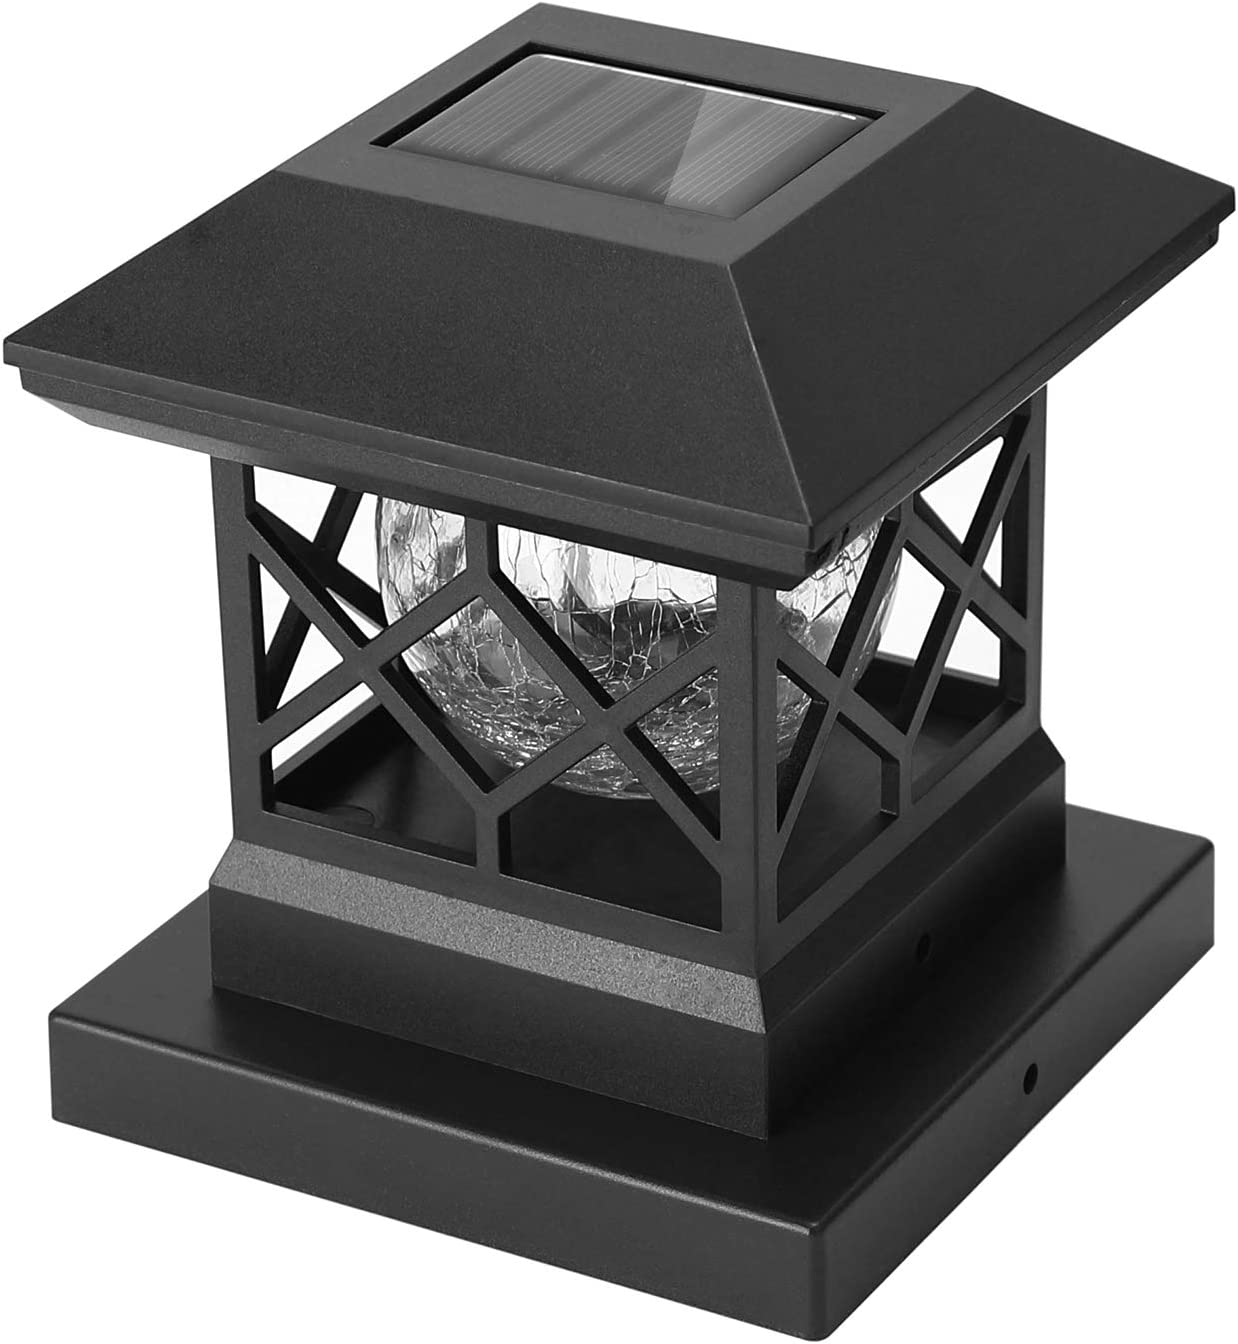 Slate Black 2 Pack Fits 4x4 Or 6x6 Posts Solar Post Fence Outdoor Lights